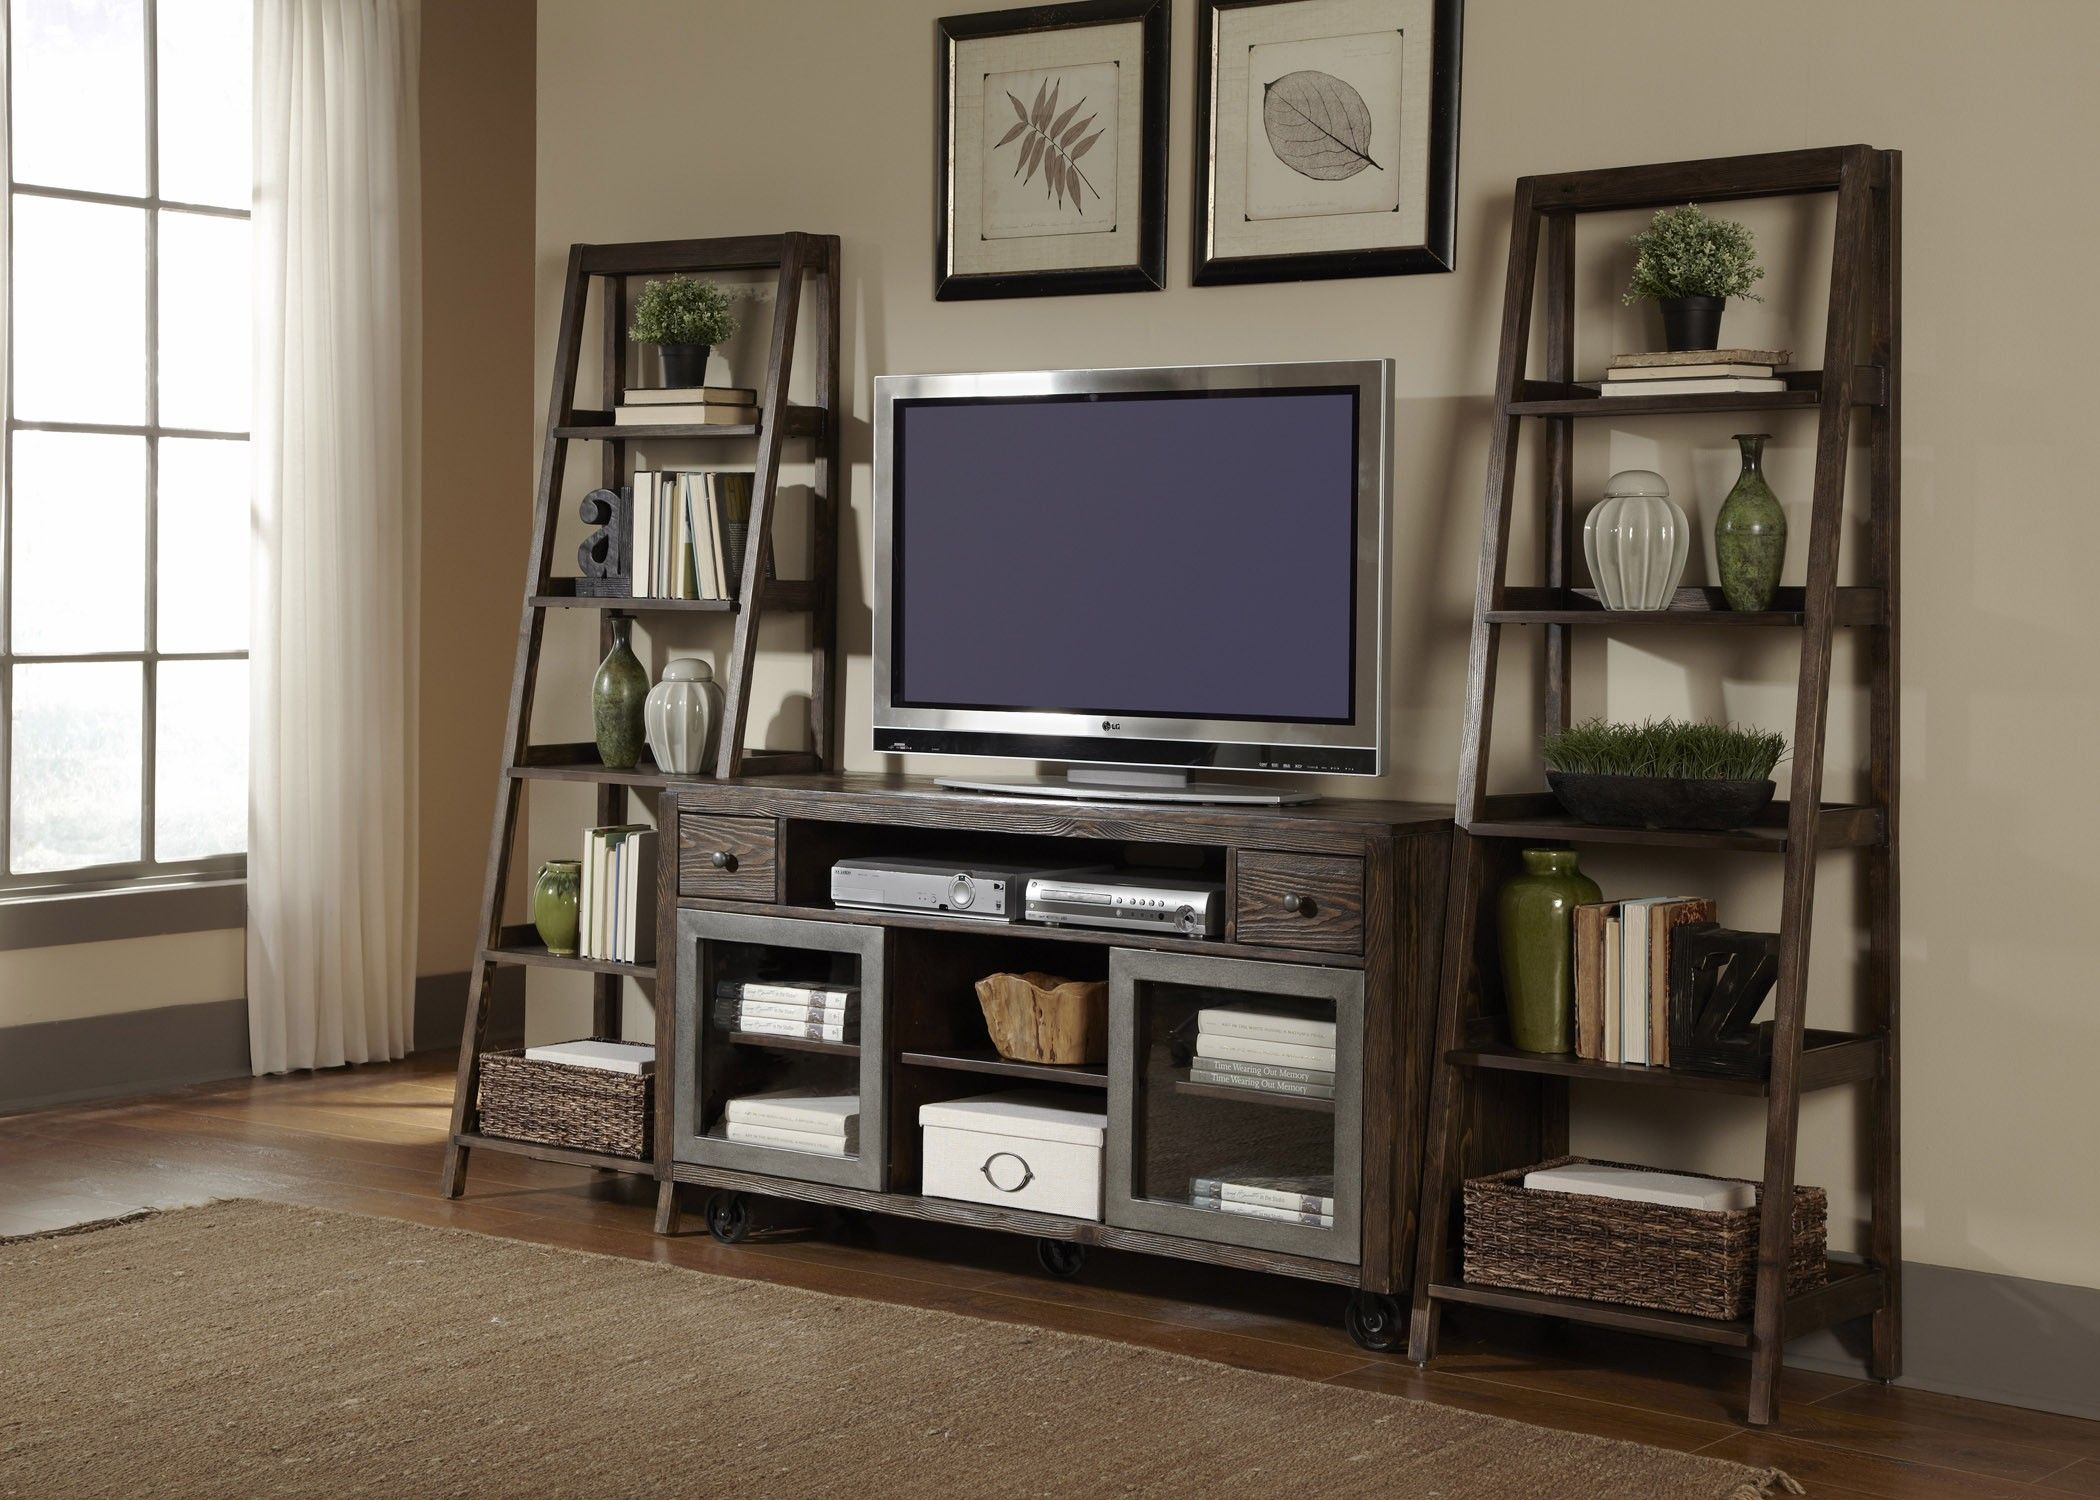 Tv Stand Decor Ideas Leaning Bookshelf Entertainment Center Avignon